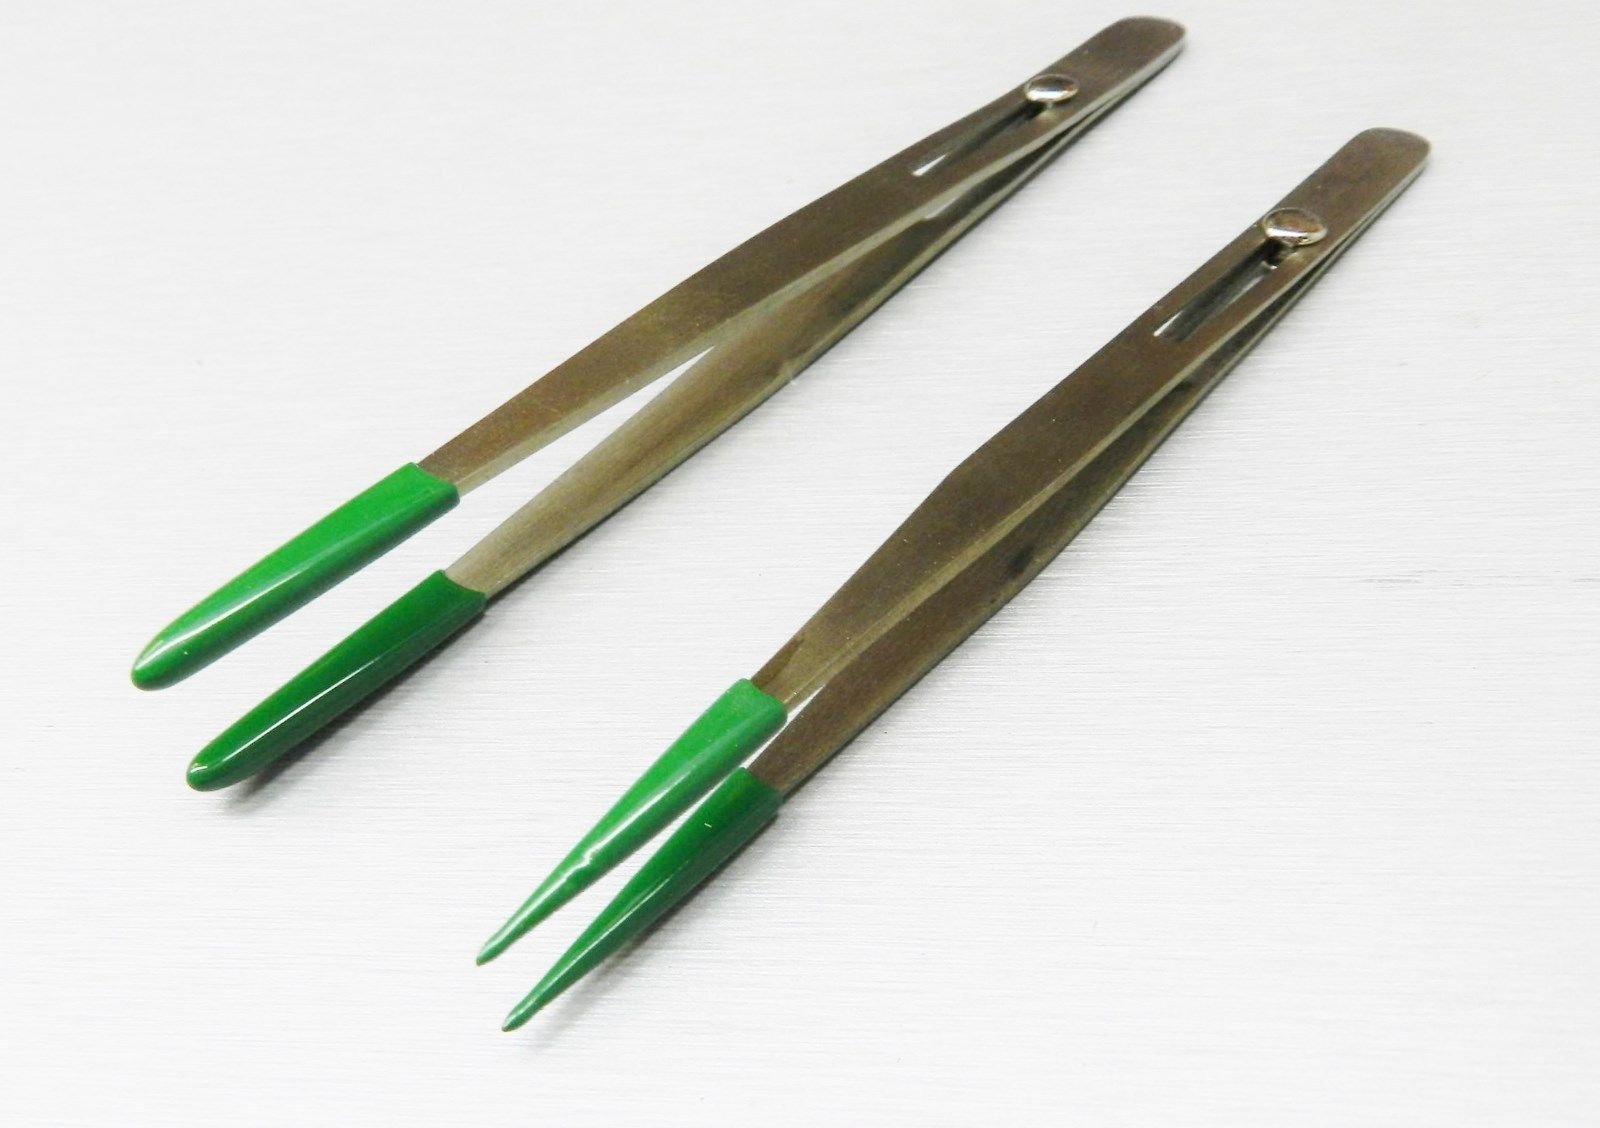 TWEEZERS SLIDE LOCKING PVC RUBBER TIPPED SET 2 Pcs - POINTED & BLUNT NON MARRING (E2)